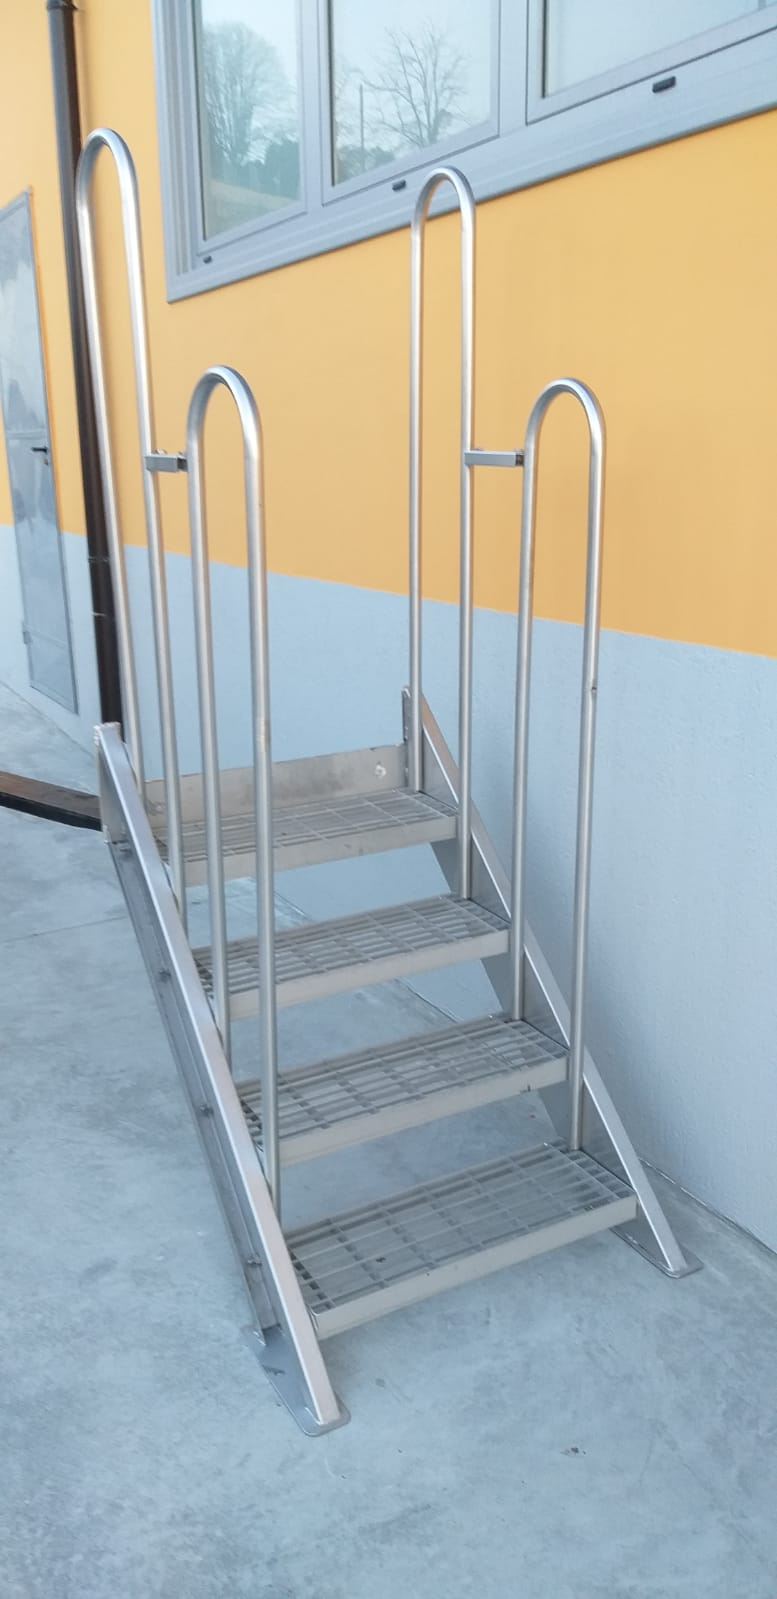 STAINLESS STEEL LADDERS AND RAILINGS